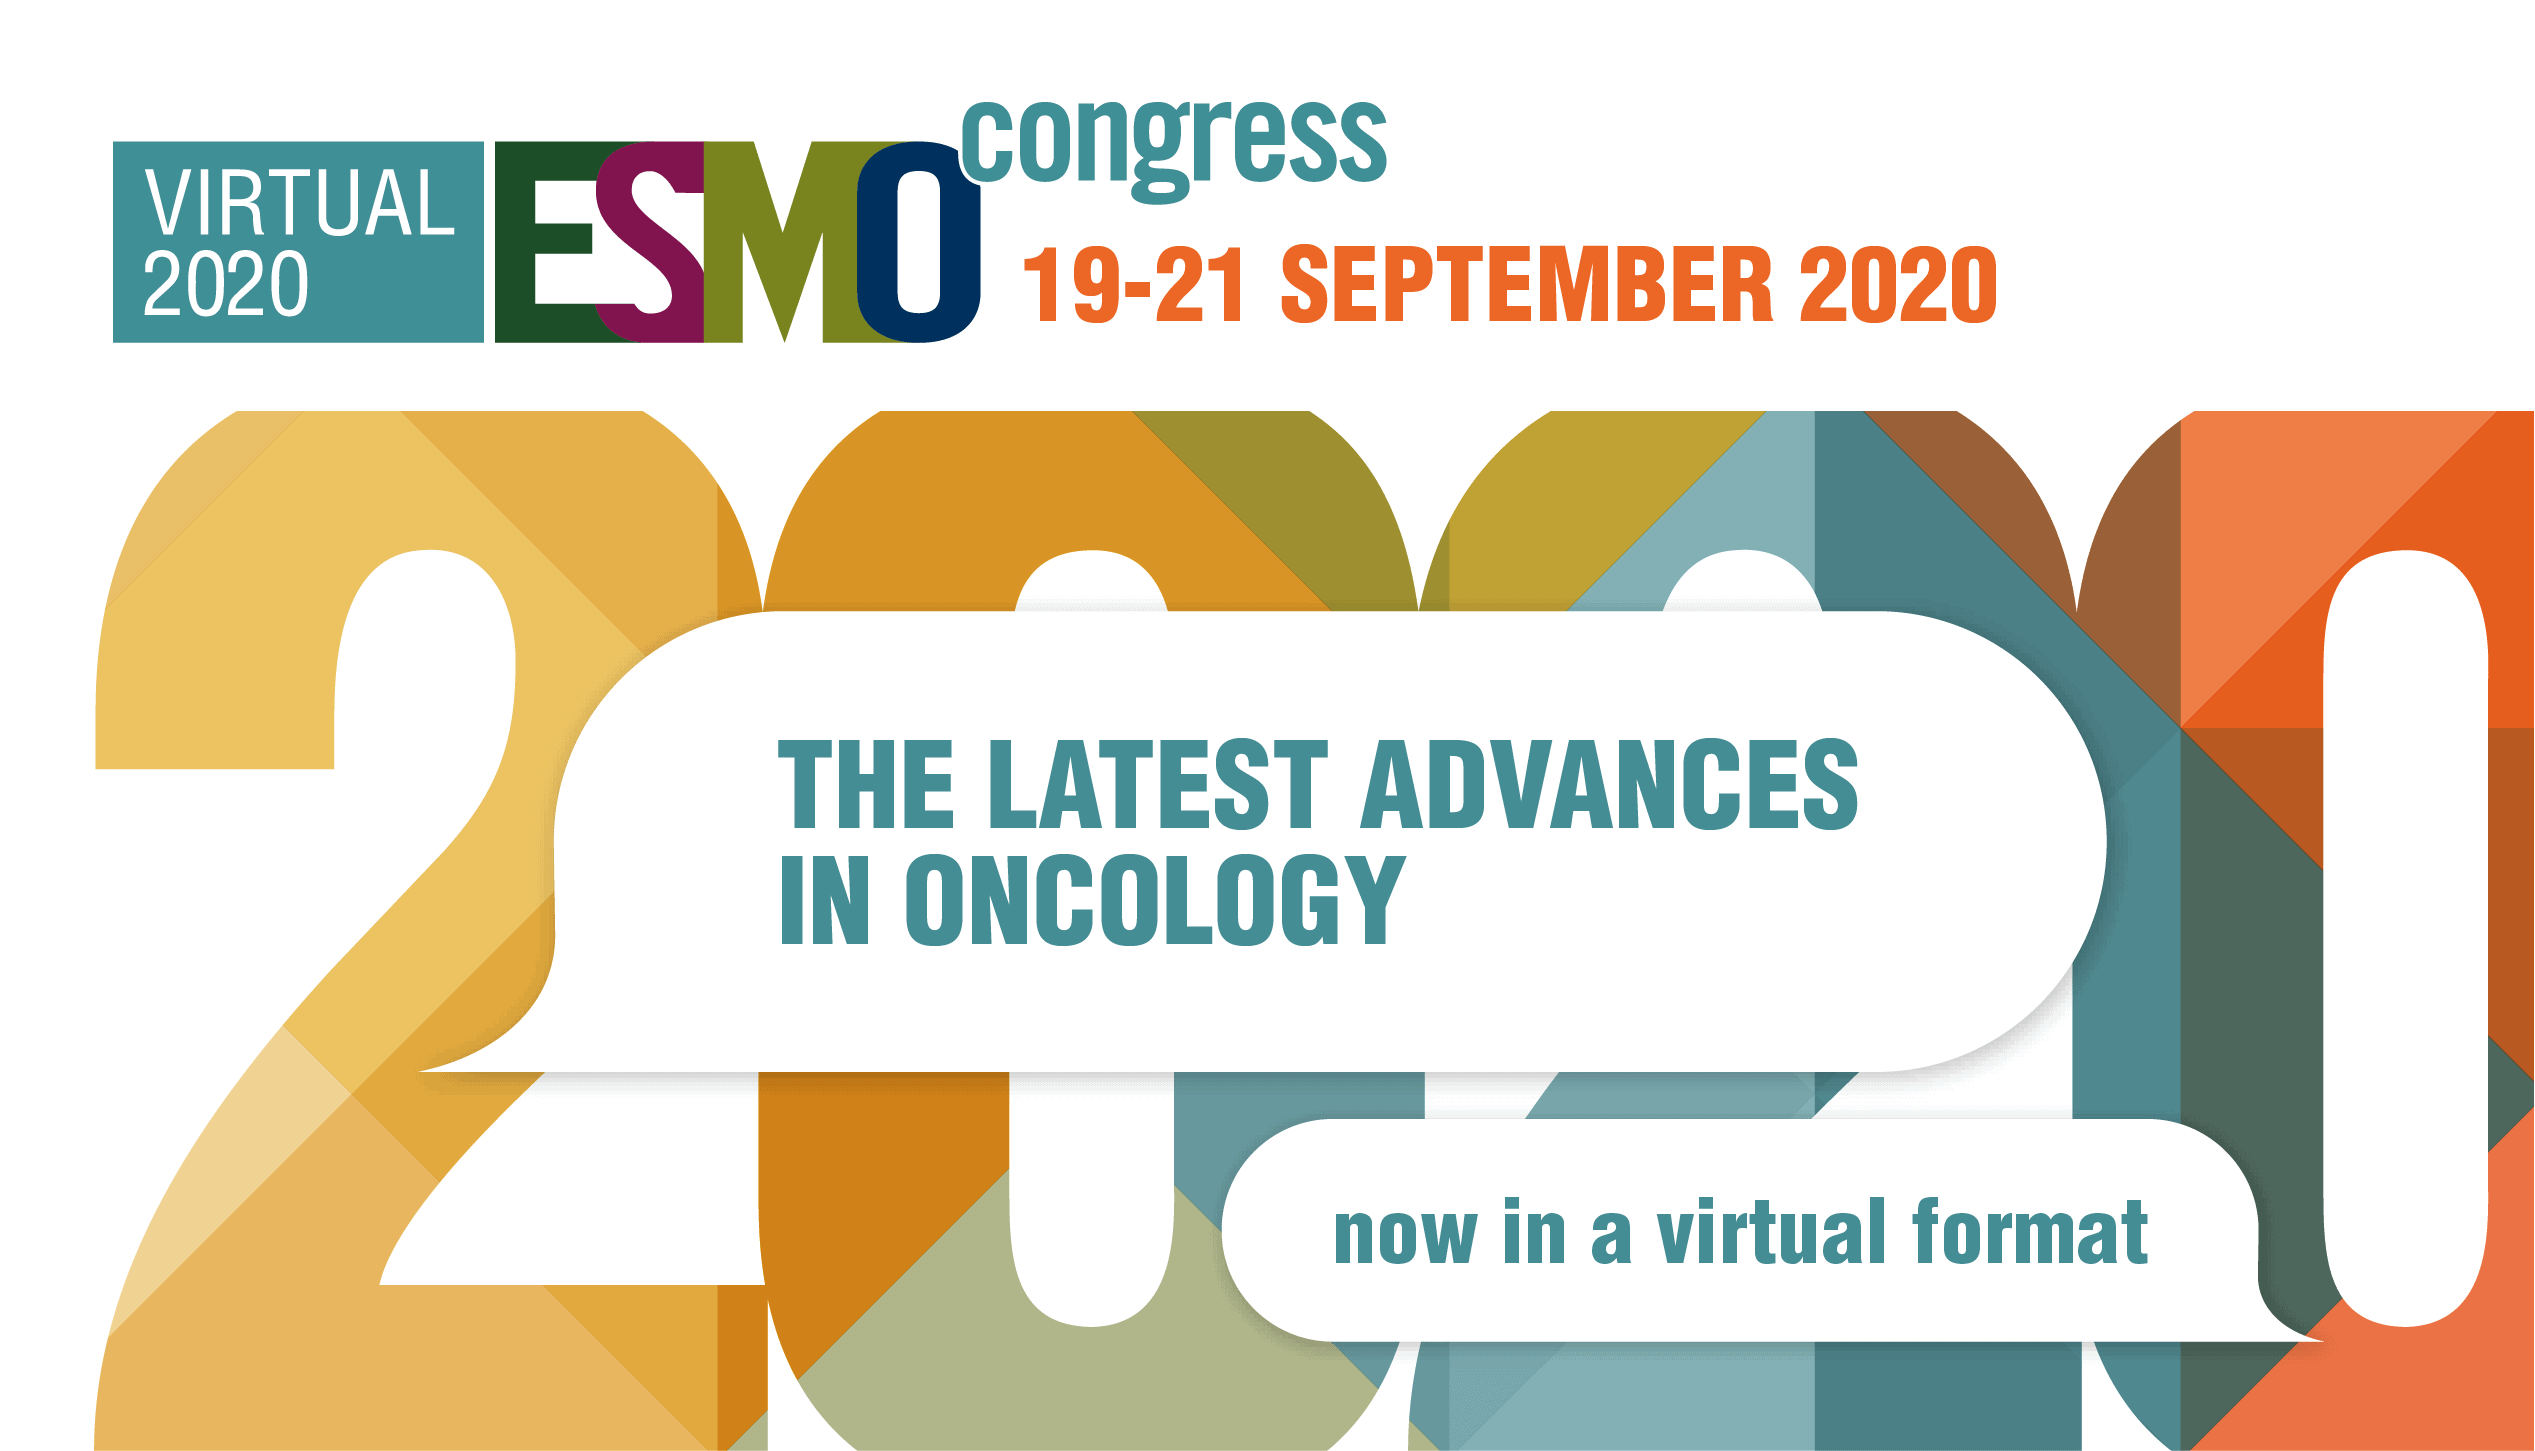 ESMO Virtual Congress 2020 Around the Corner: All Eyes On Lung Cancer